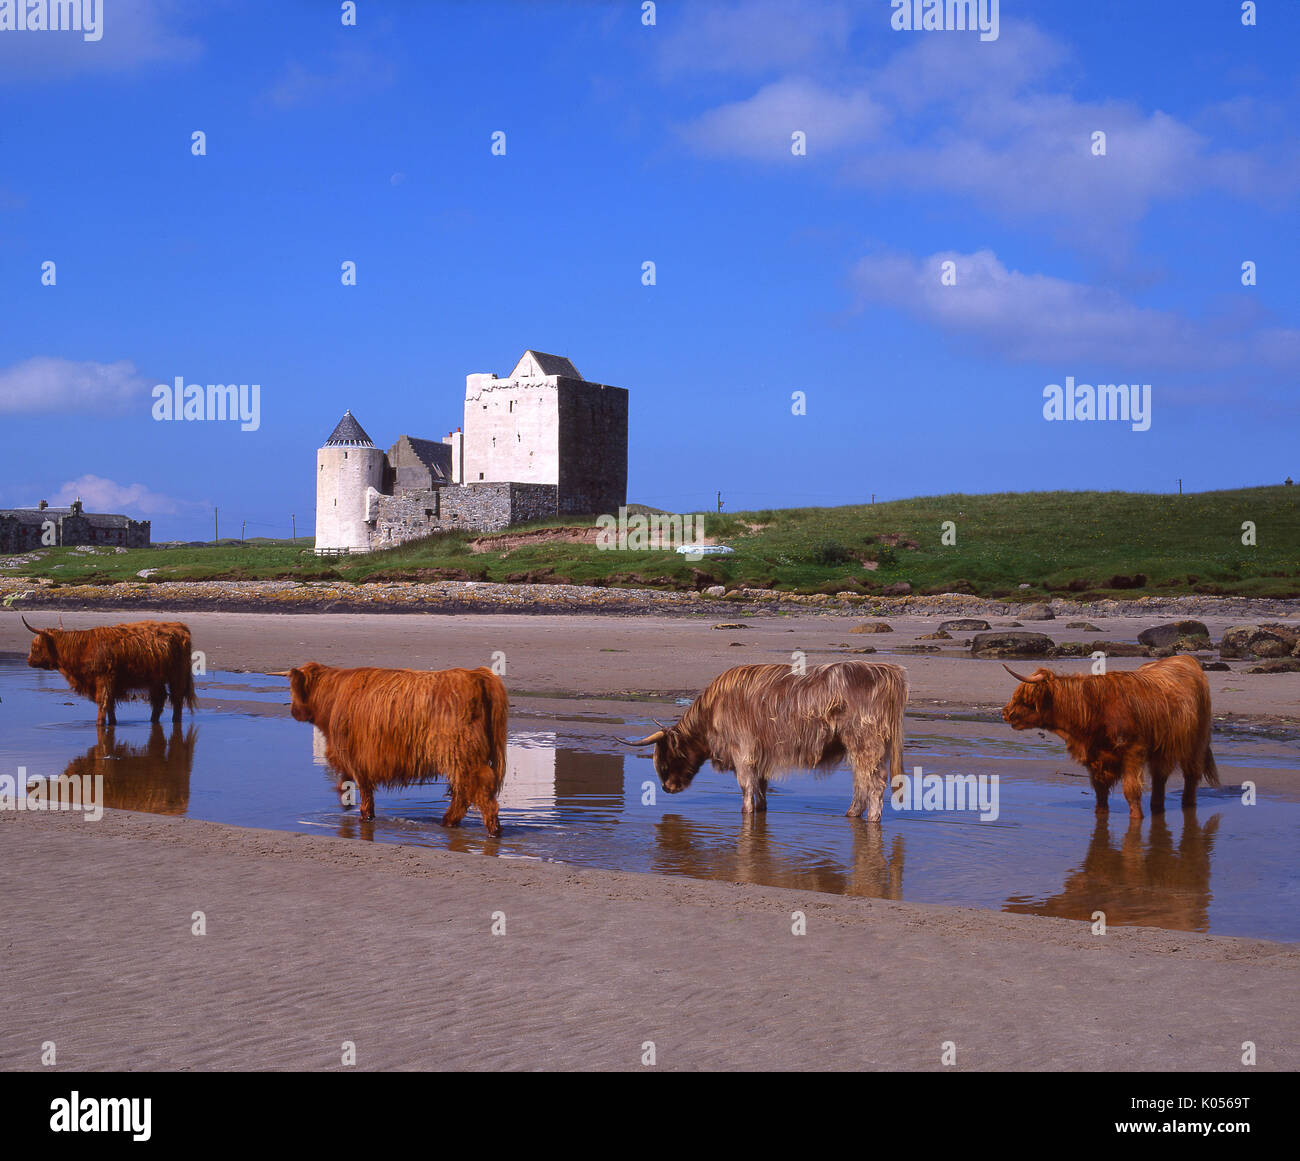 Highland cows are seen here enjoying the hot summer weather at Breachacha Castle on the beautiful island of Coll, Argyll - Stock Image